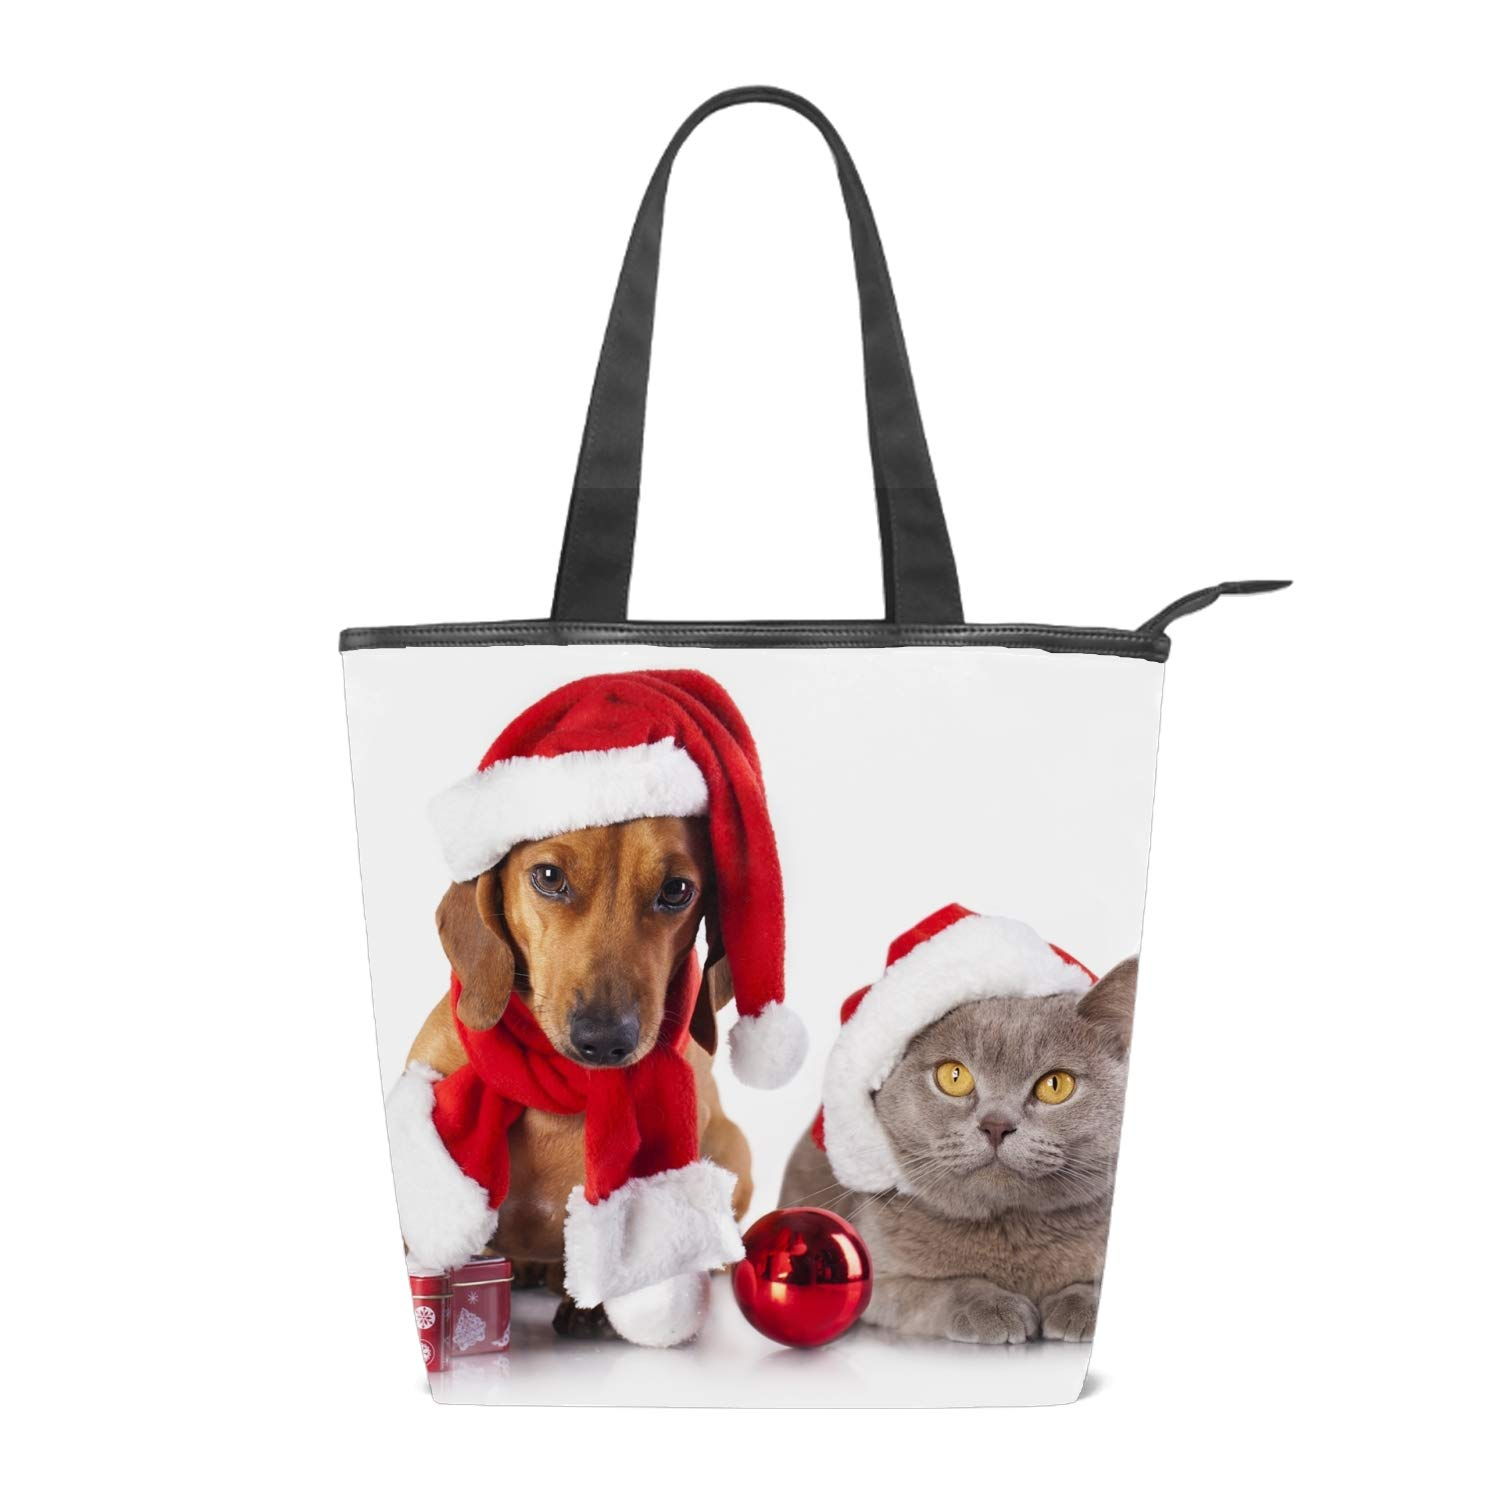 Womens Canvas Shoulder Tote Handbag Funny Santa Claus Reindeer Travel Handbags for Shopper Daily Purse Tote Bag